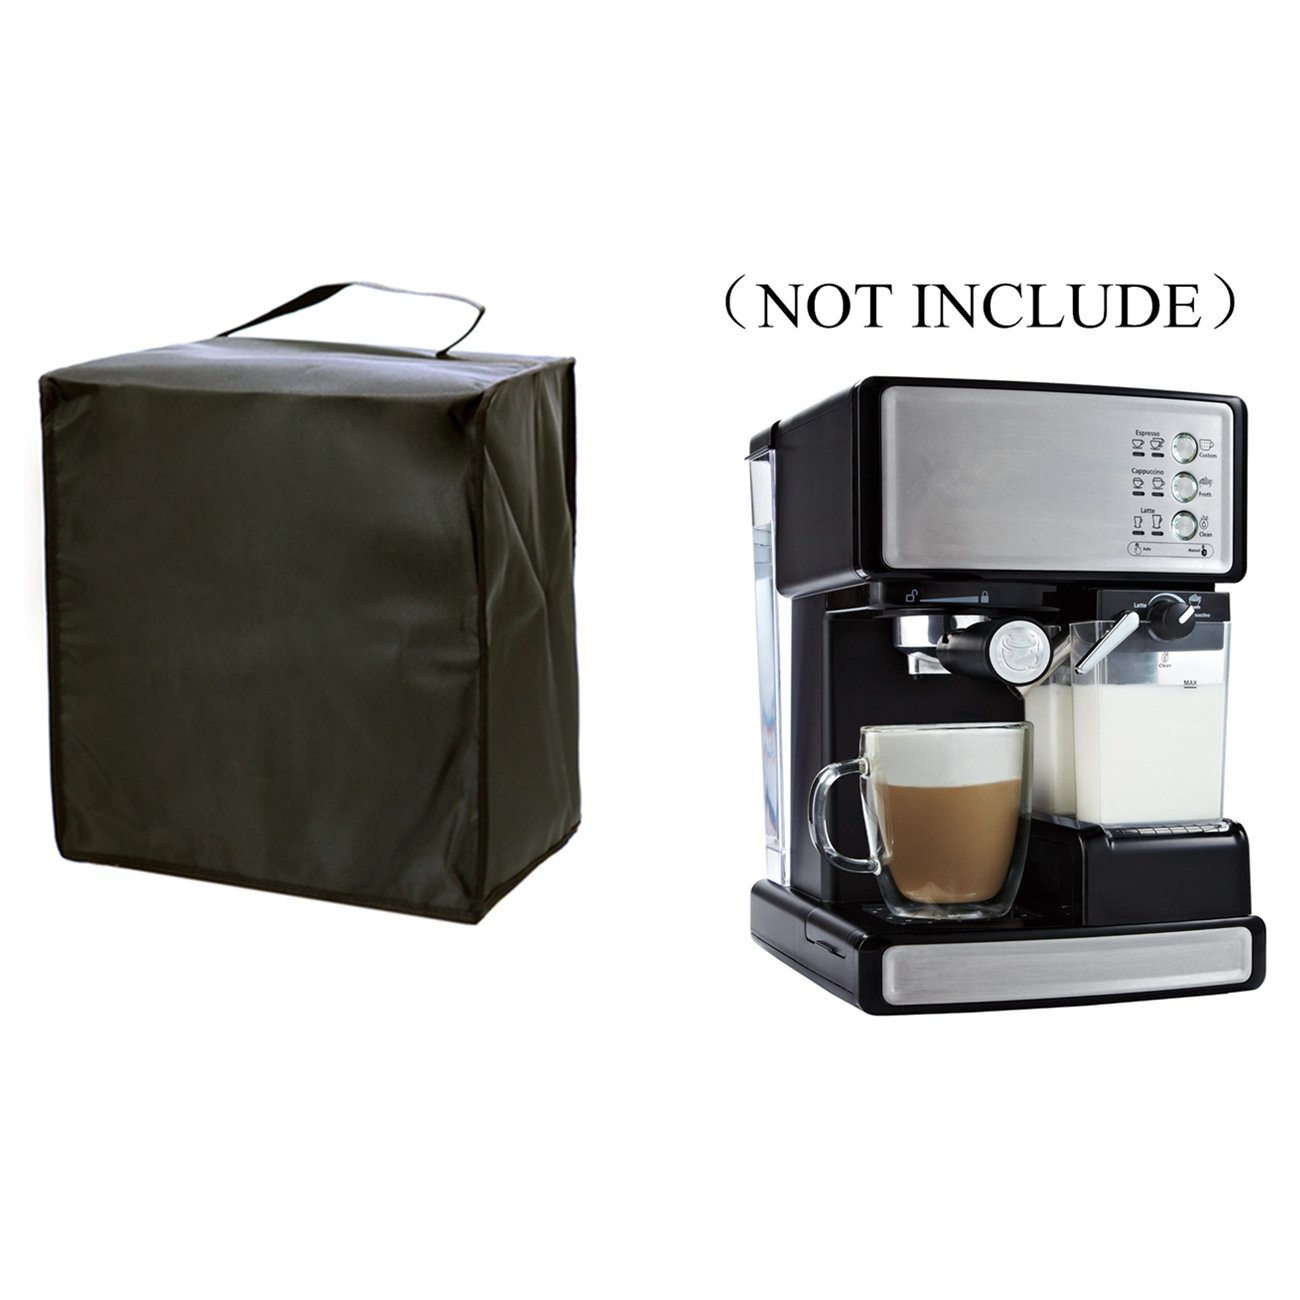 Orchidtent Coffee Maker dust Cover – 13W x 14D x 13H-Waterproof, Universal Fit- Fits ECMP1000 Coffee Maker Espresso / Cappuccino (For ECMP1000)